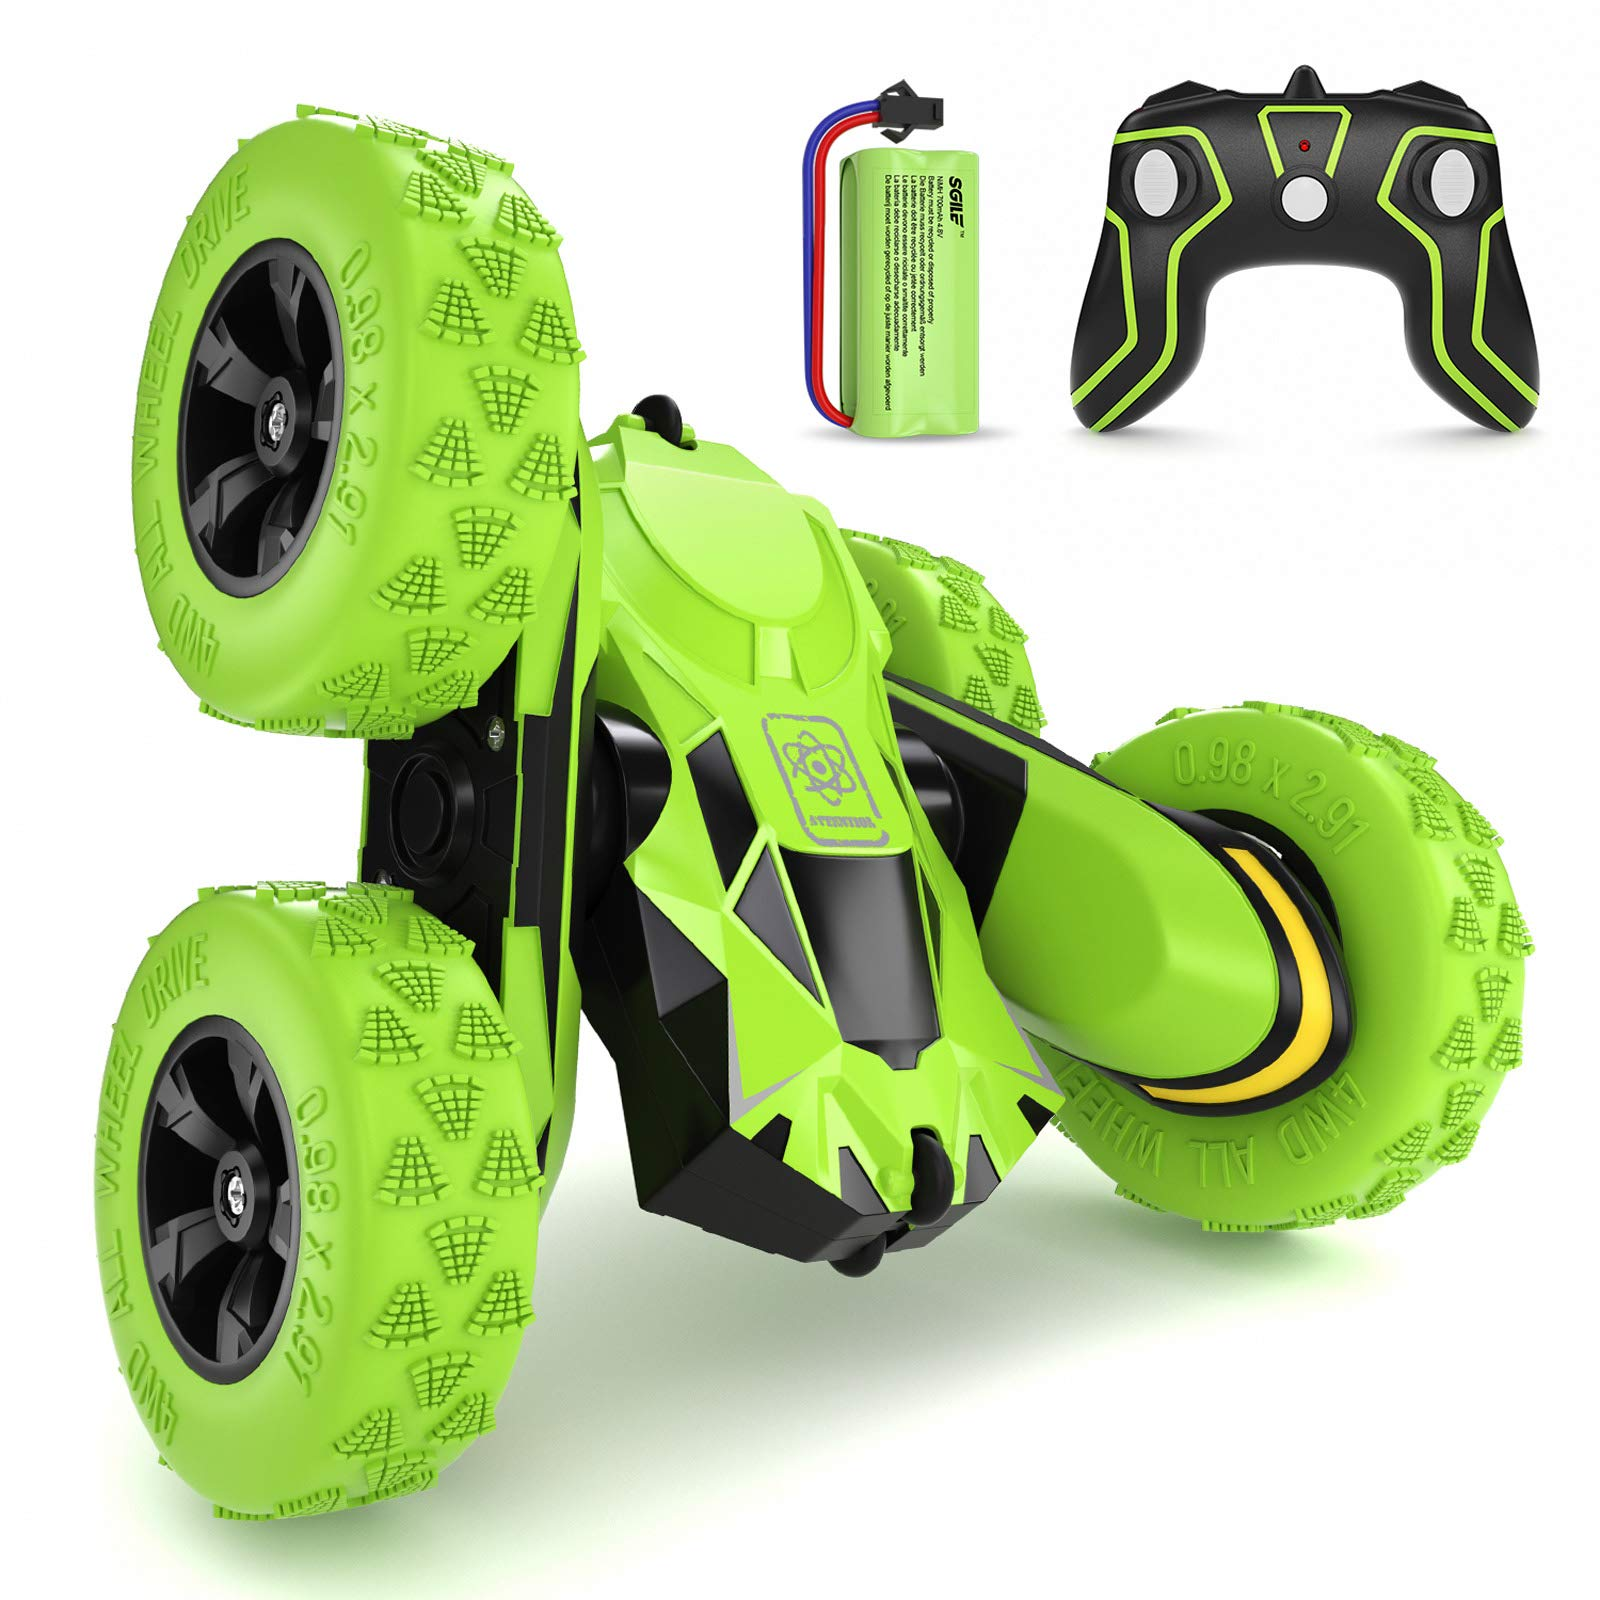 SGILE 4WD Remote Control Car for 6-12 Years Old Kids, 360° Double Side Flips RC Stunt Car Birthday Toy Gift, Green